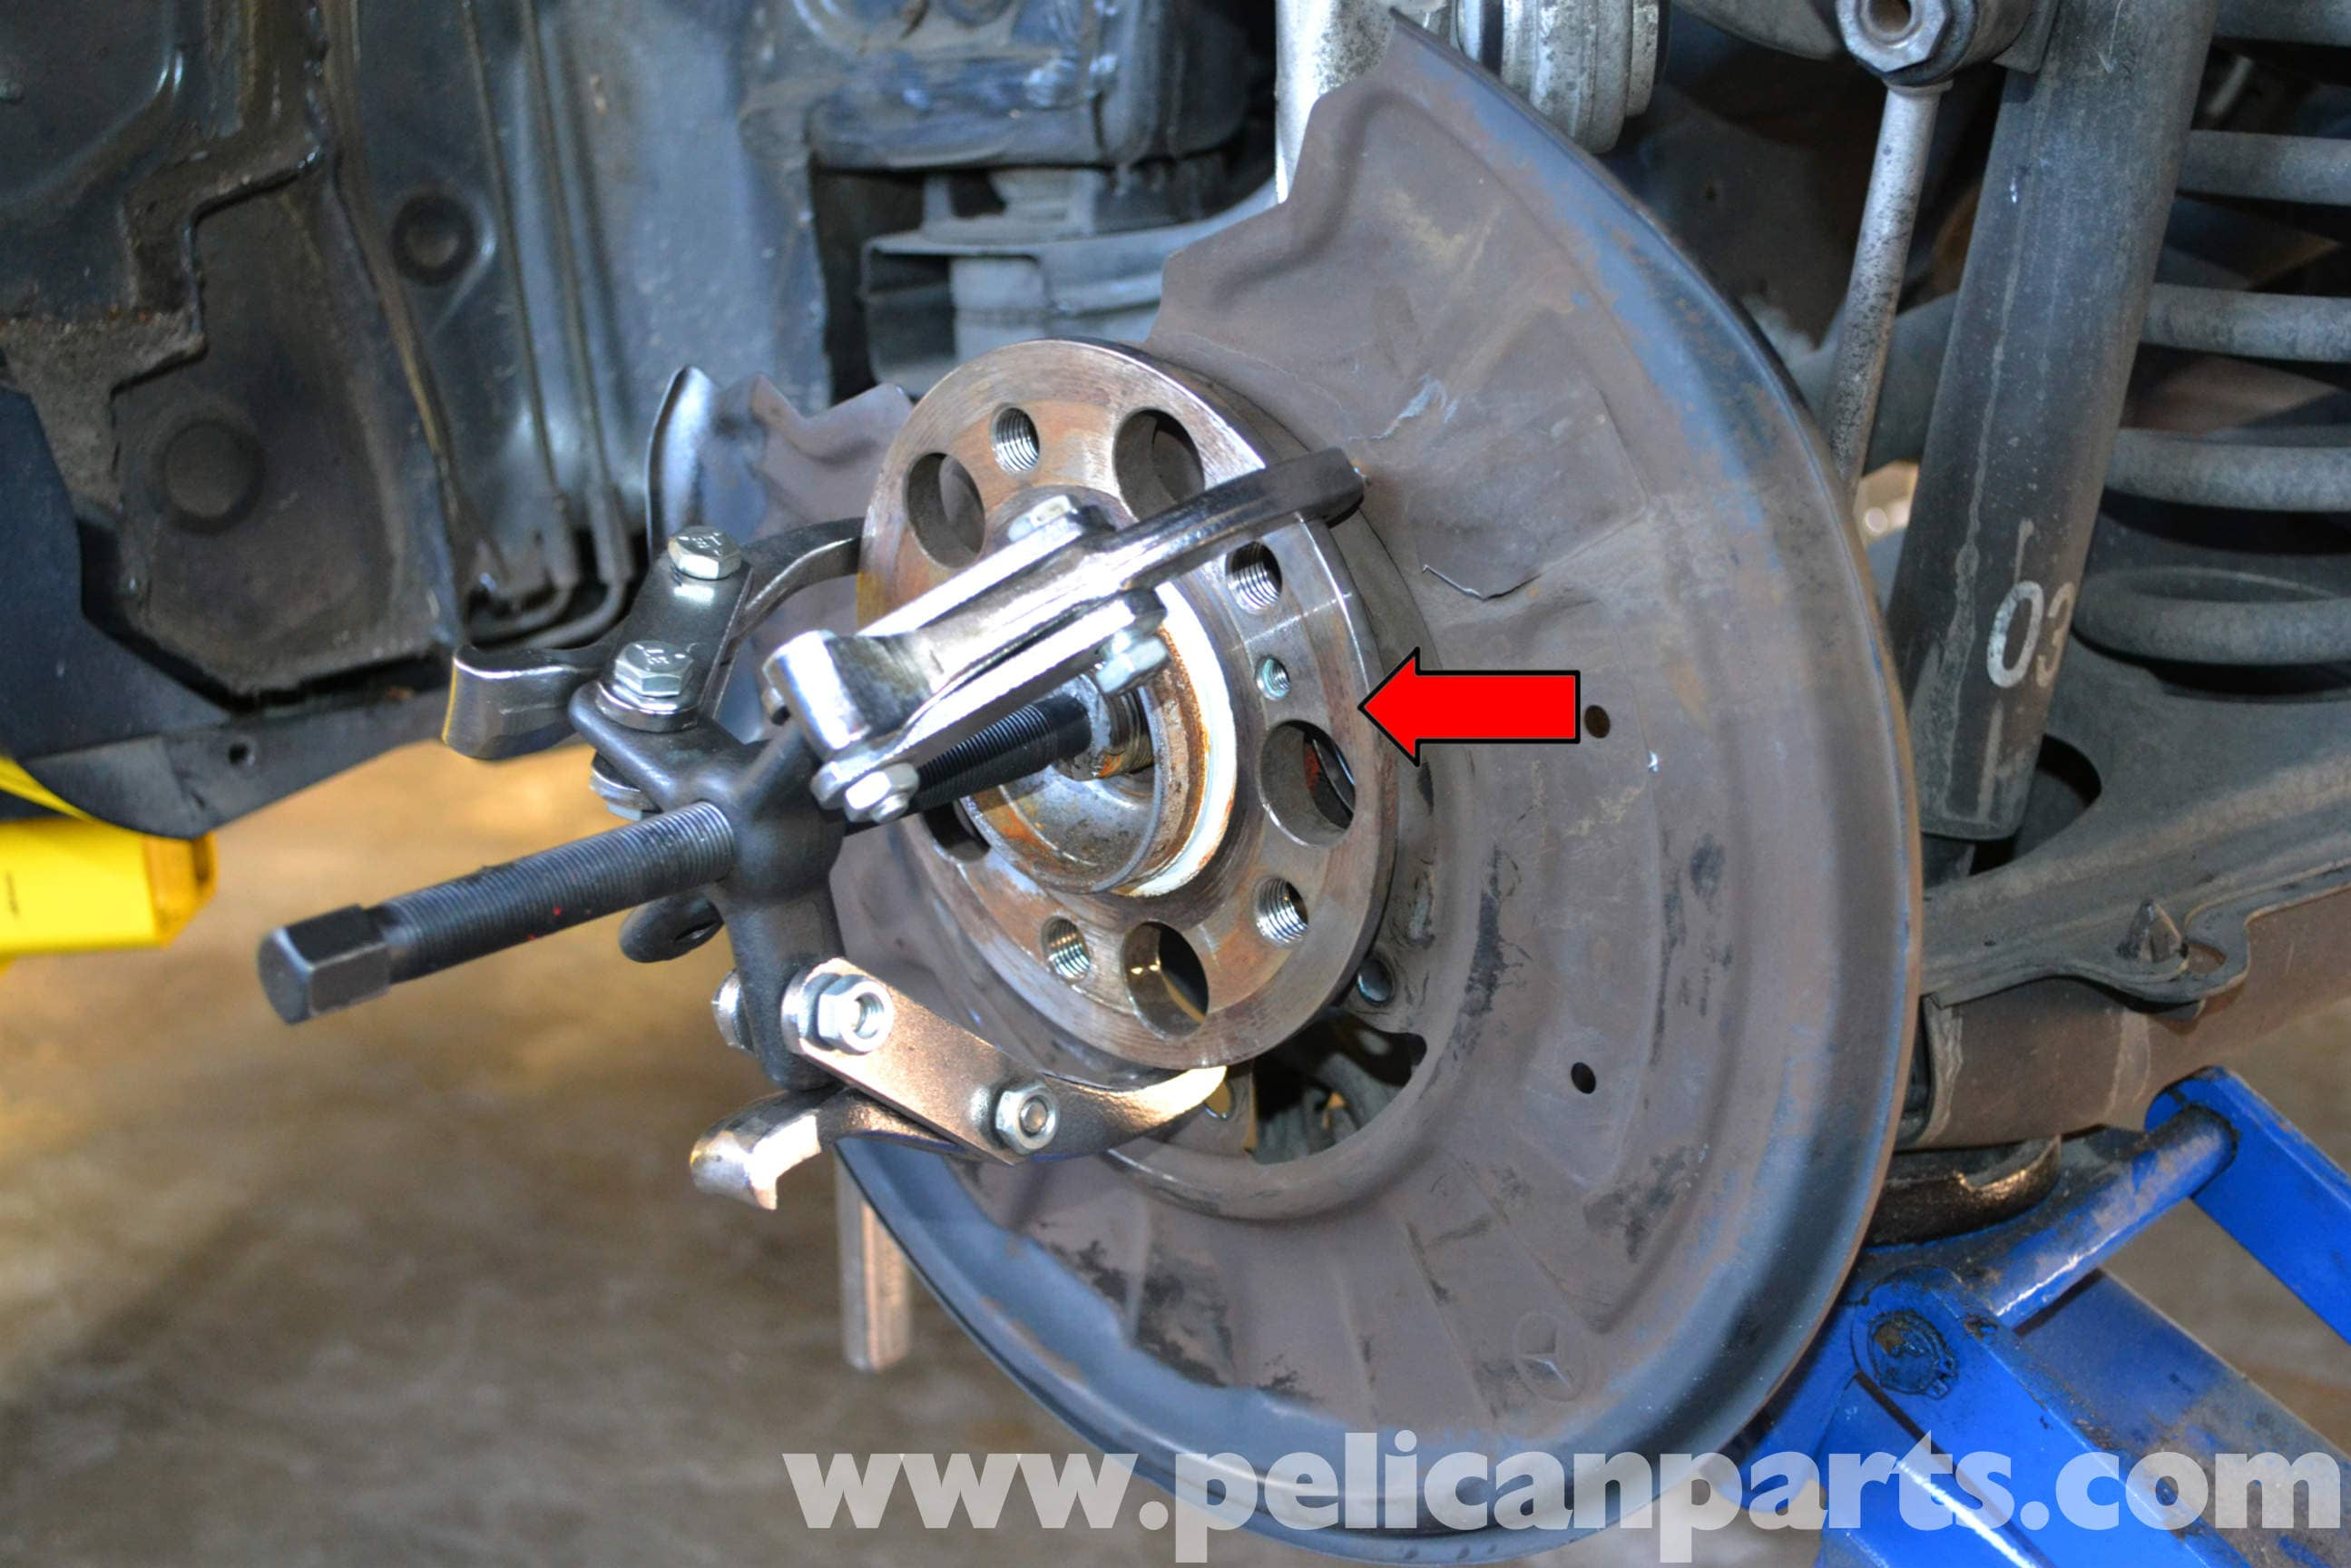 Mercedes Benz W204 Rear Bearing Replacement 2008 2014